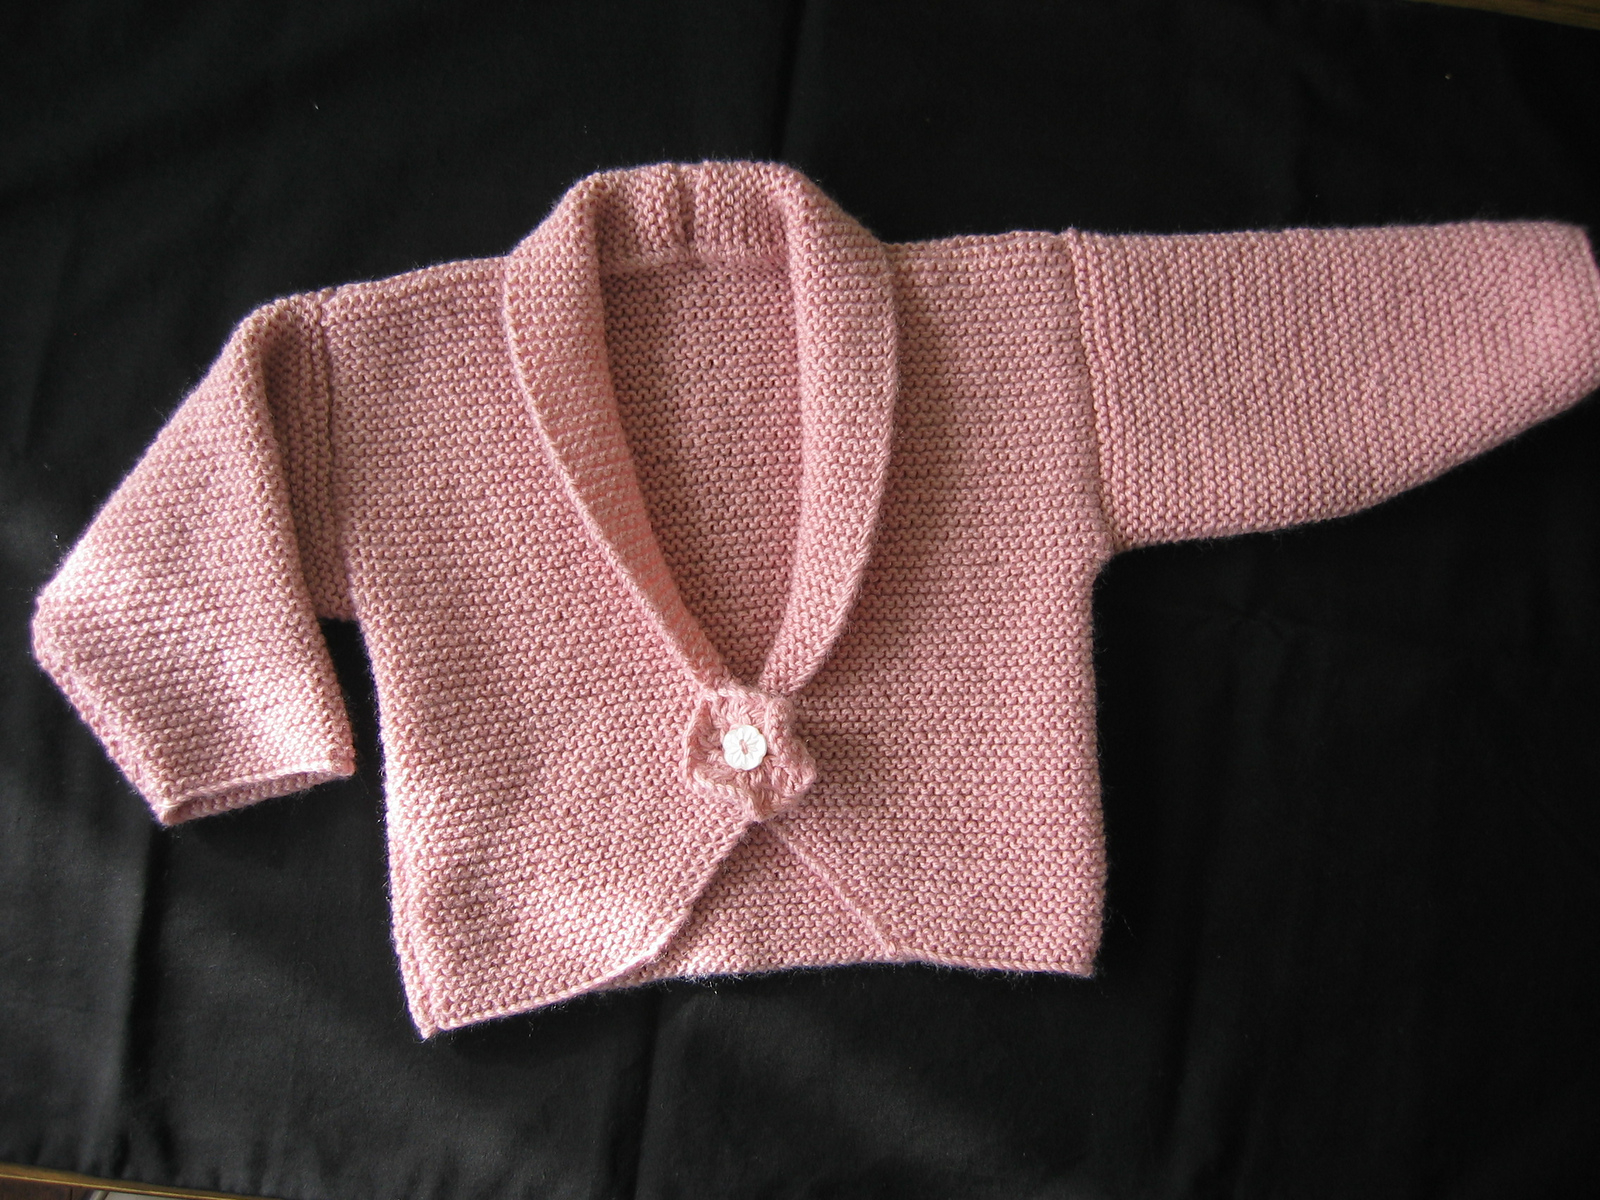 Free Double Knit Baby Cardigan Patterns Ba Cardigan Sweater Knitting Patterns In The Loop Knitting